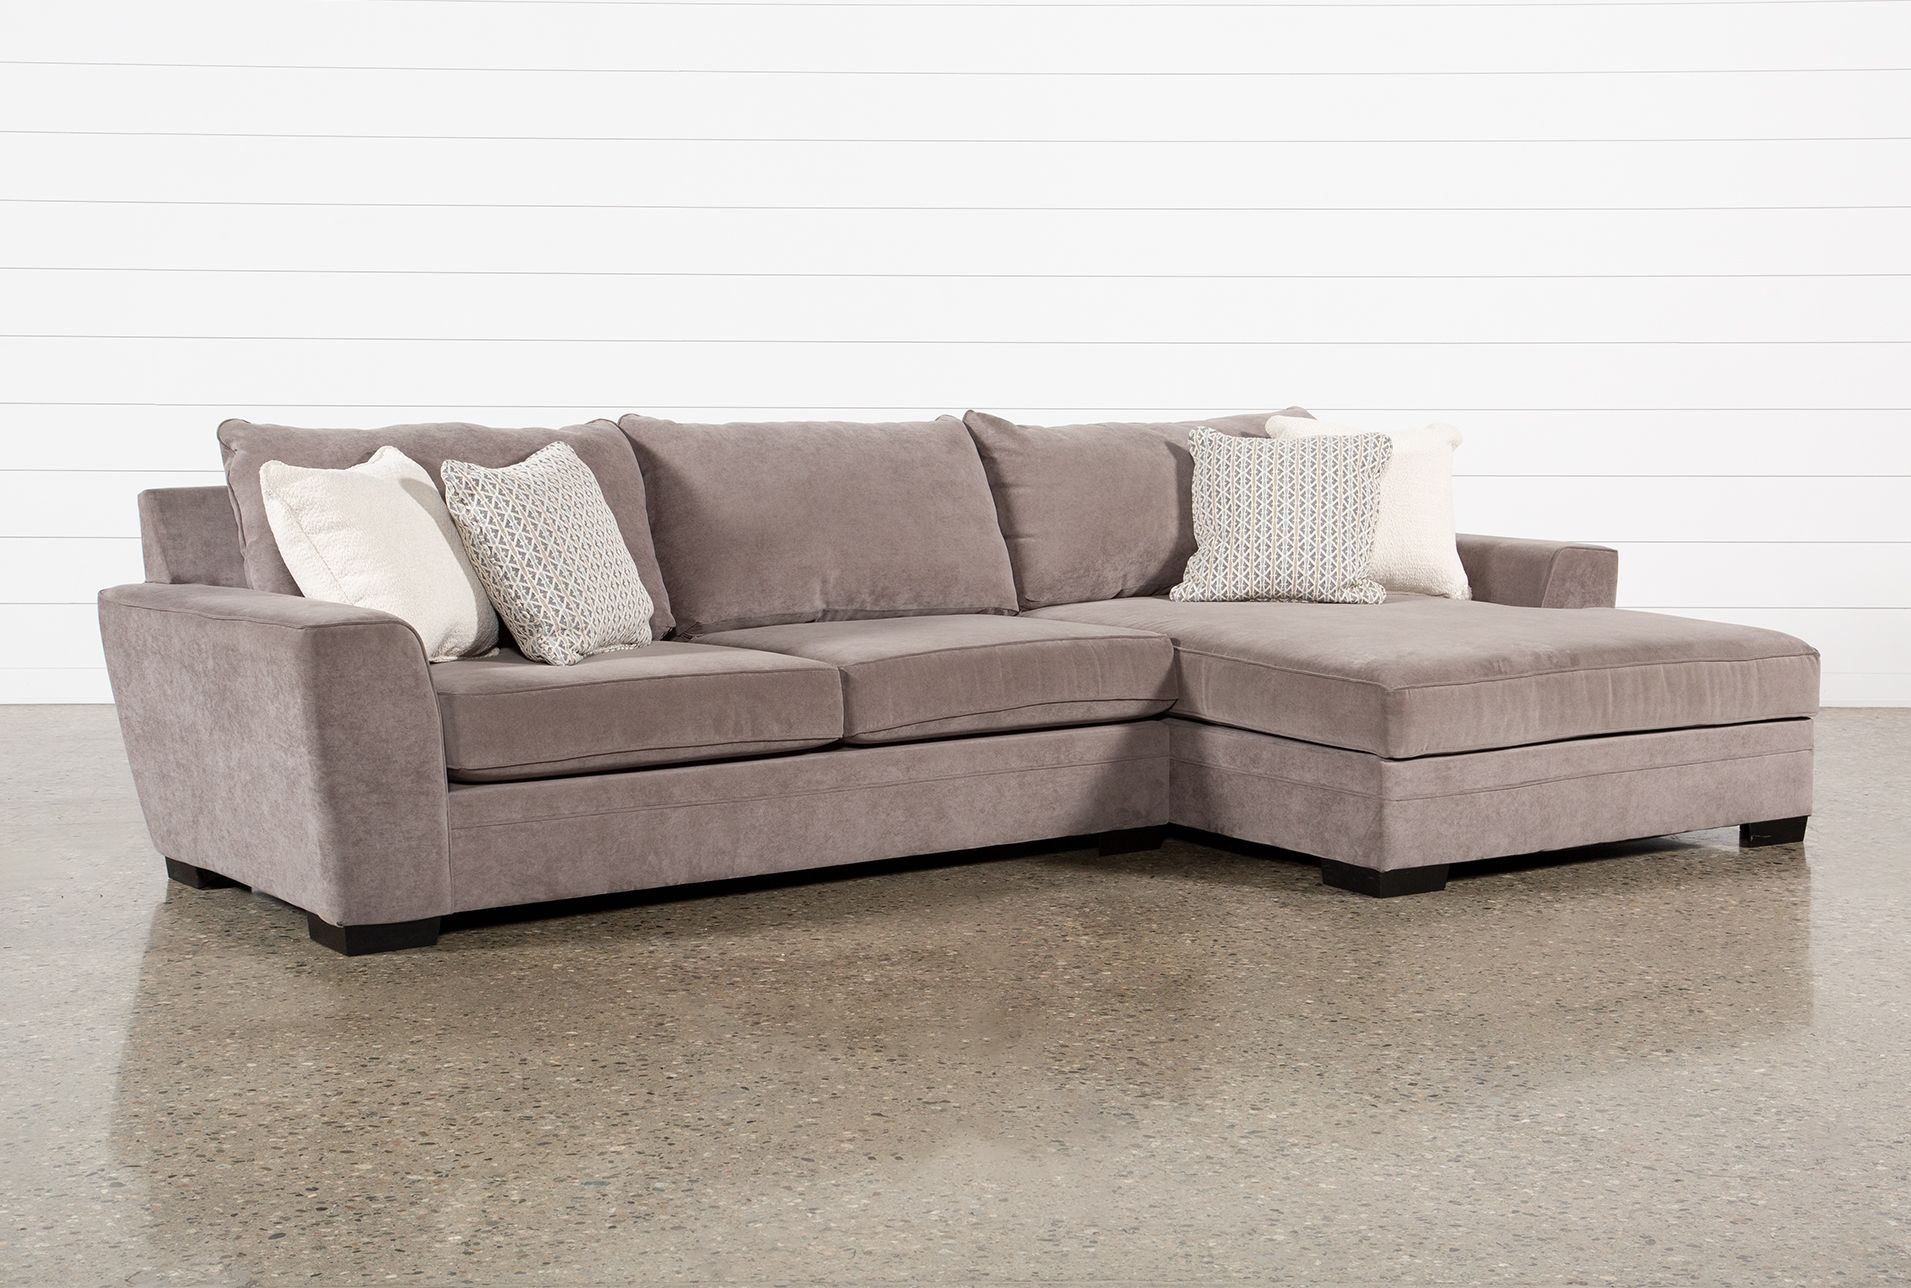 Delano Charcoal 2 Piece Sectional Sofa With Right Arm Facing